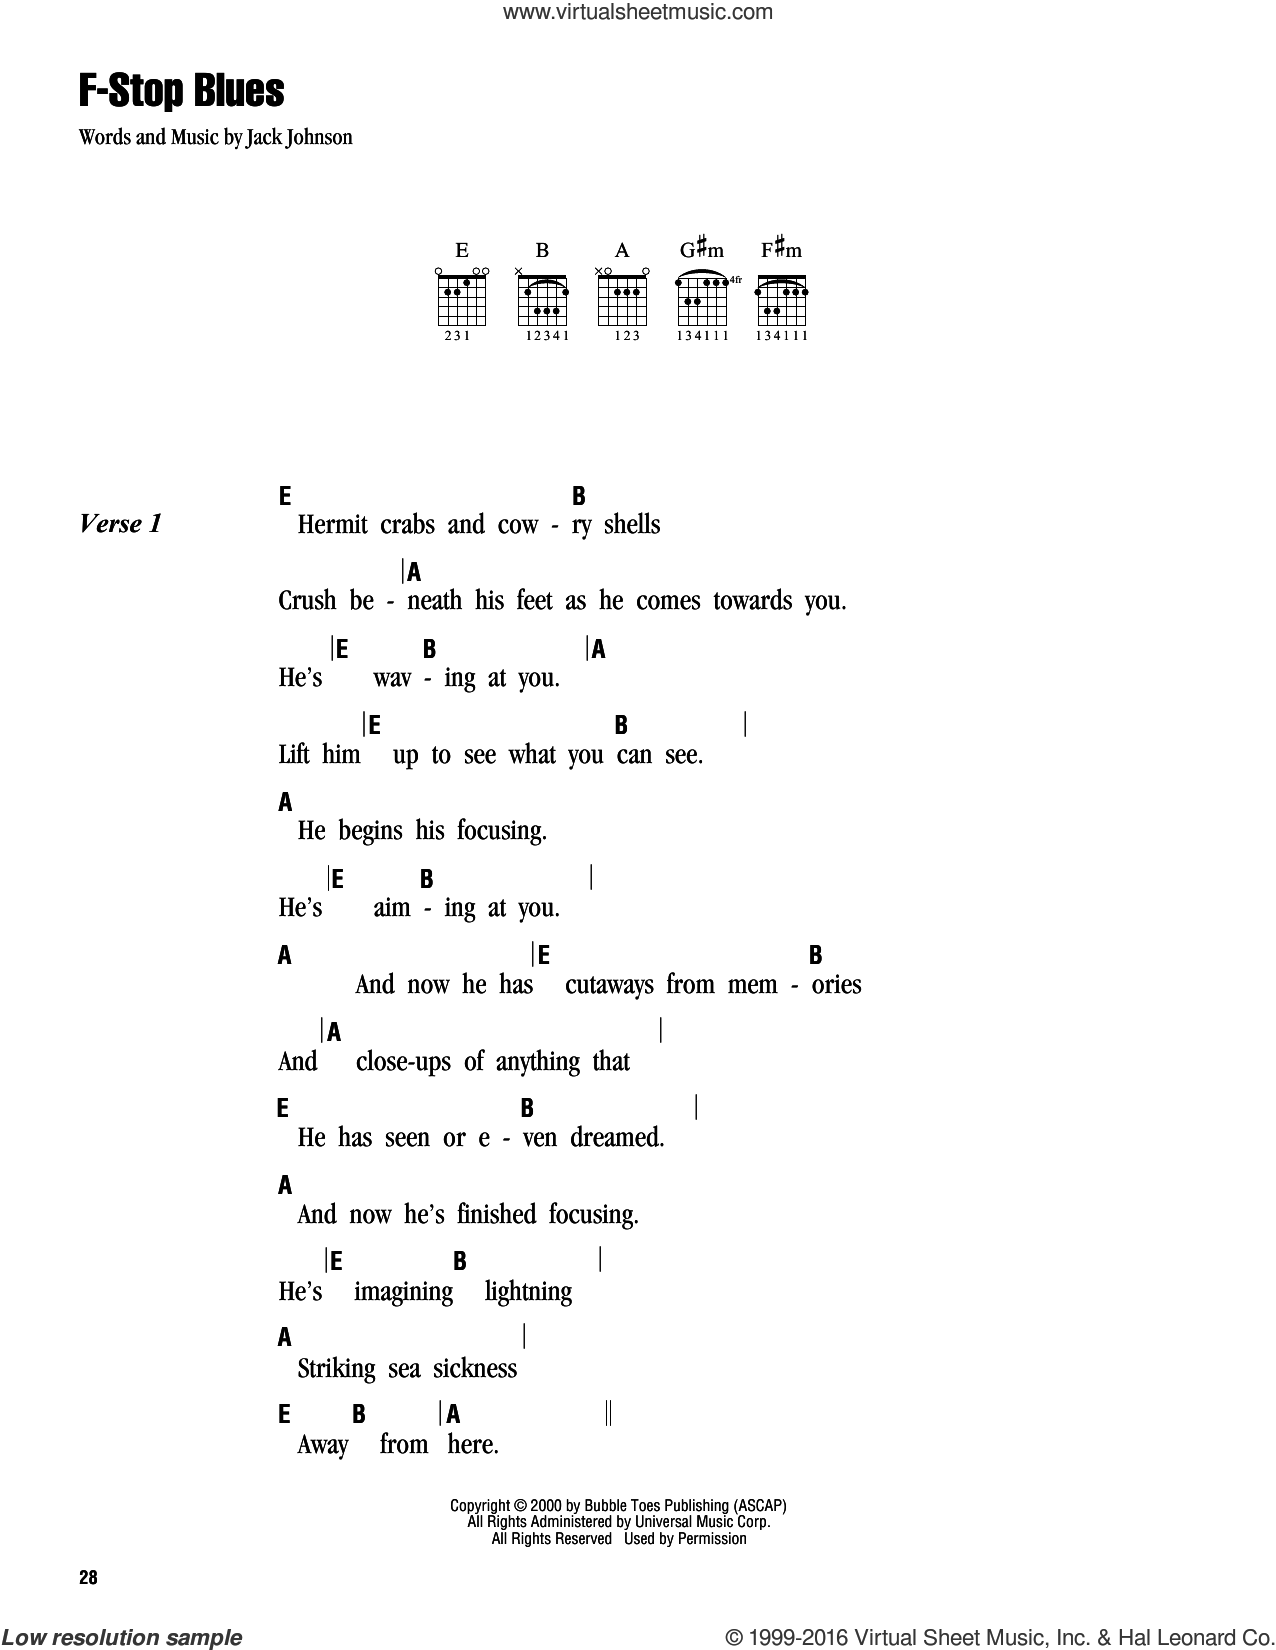 F-Stop Blues sheet music for guitar (chords) by Jack Johnson, intermediate skill level